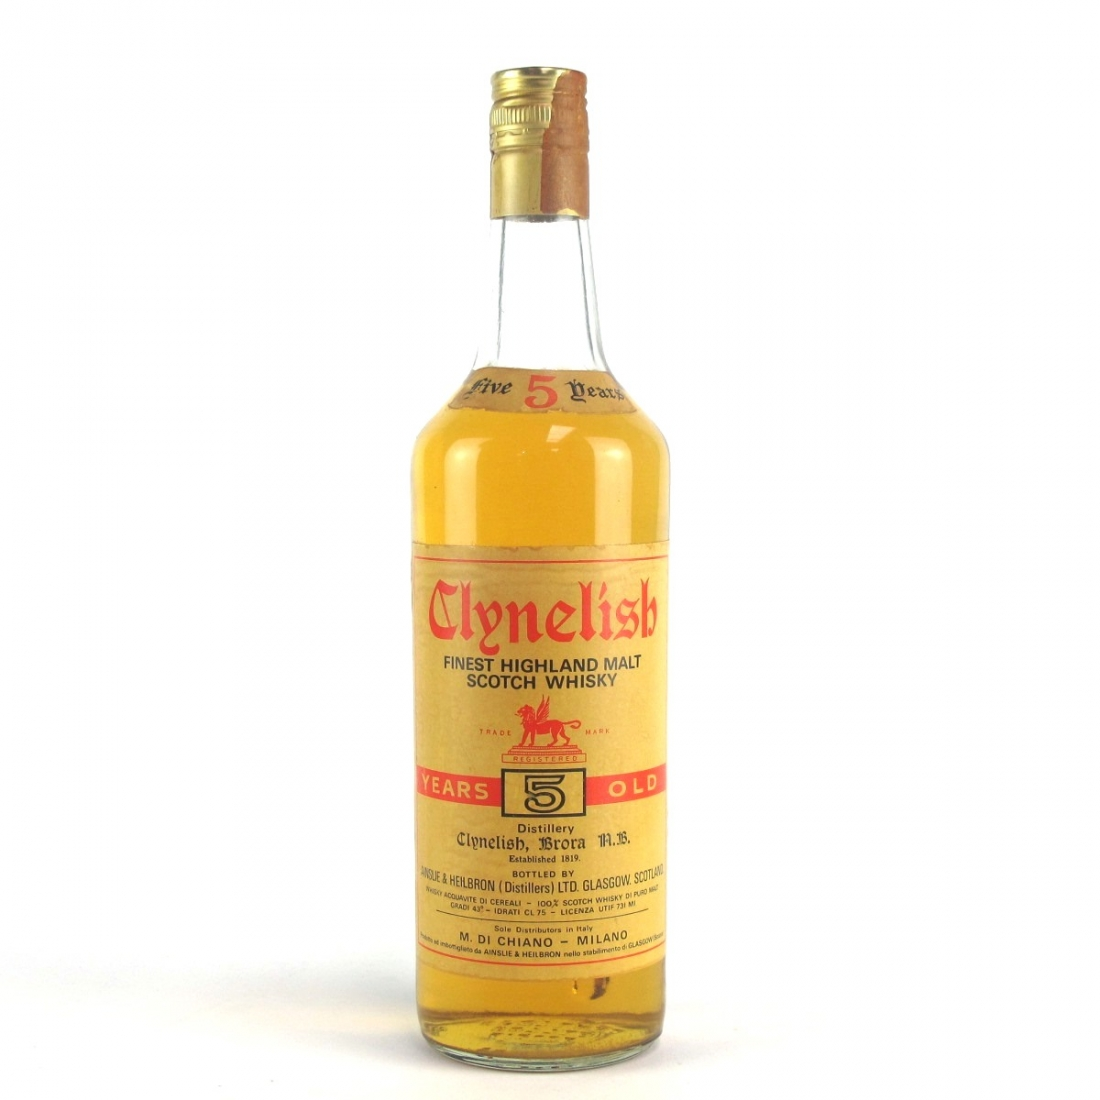 Clynelish 5 Year Old Ainslie and Heilbron circa 1960s / Di Chiano Import